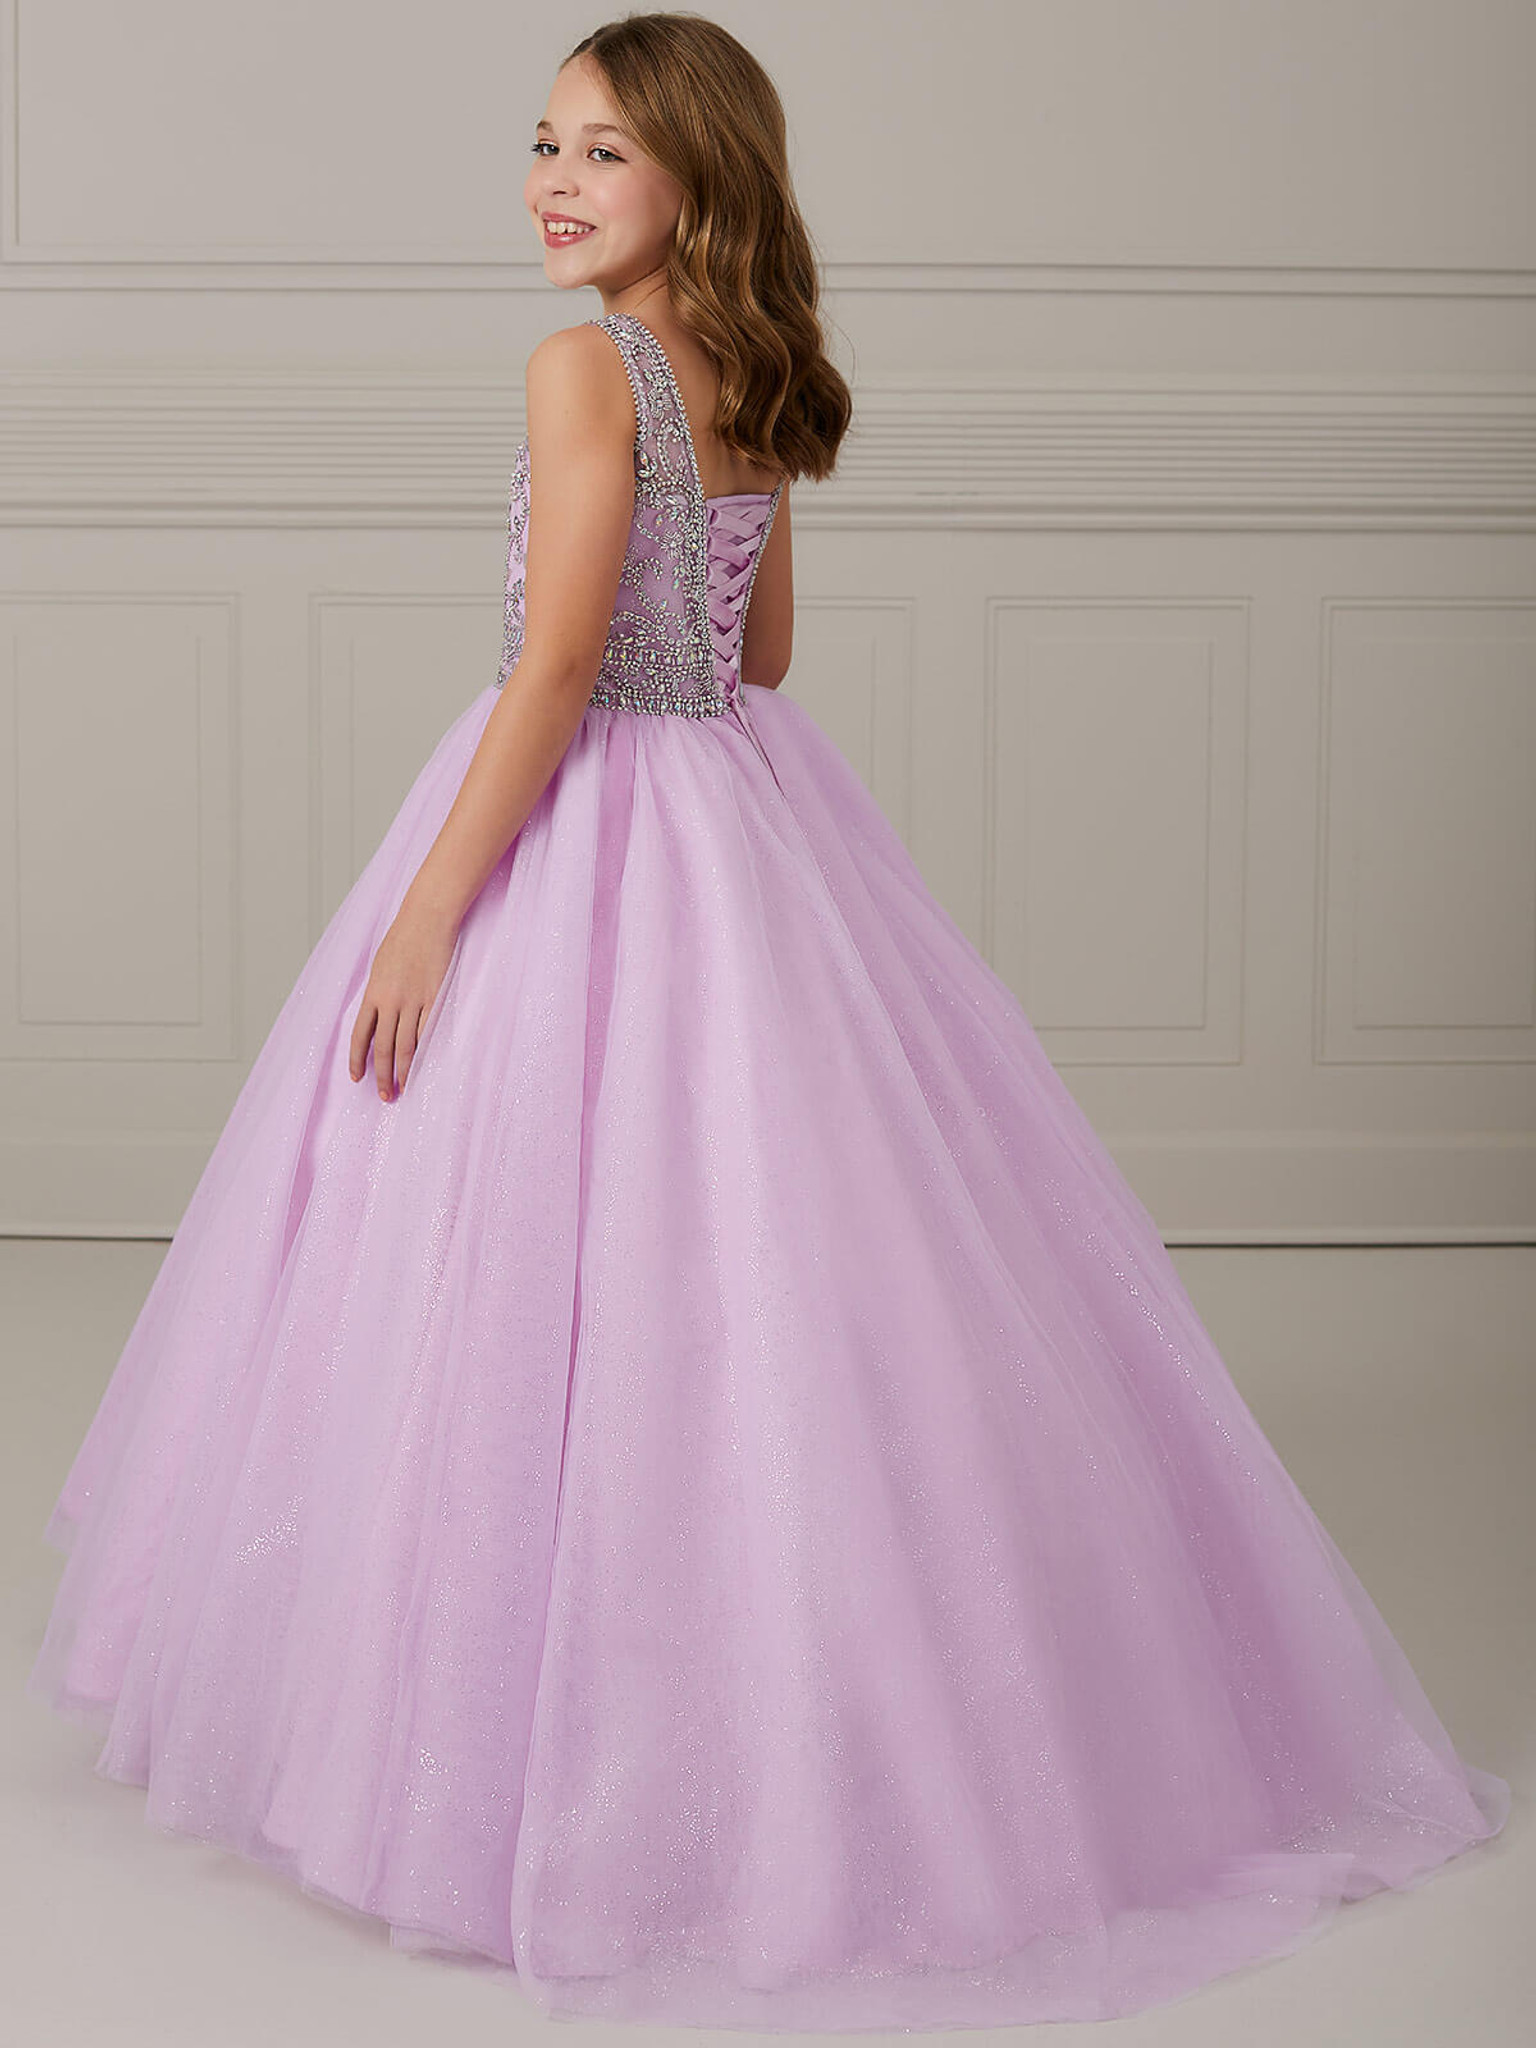 Ball Gown Girls Pageant Dress Tiffany Princess 13635